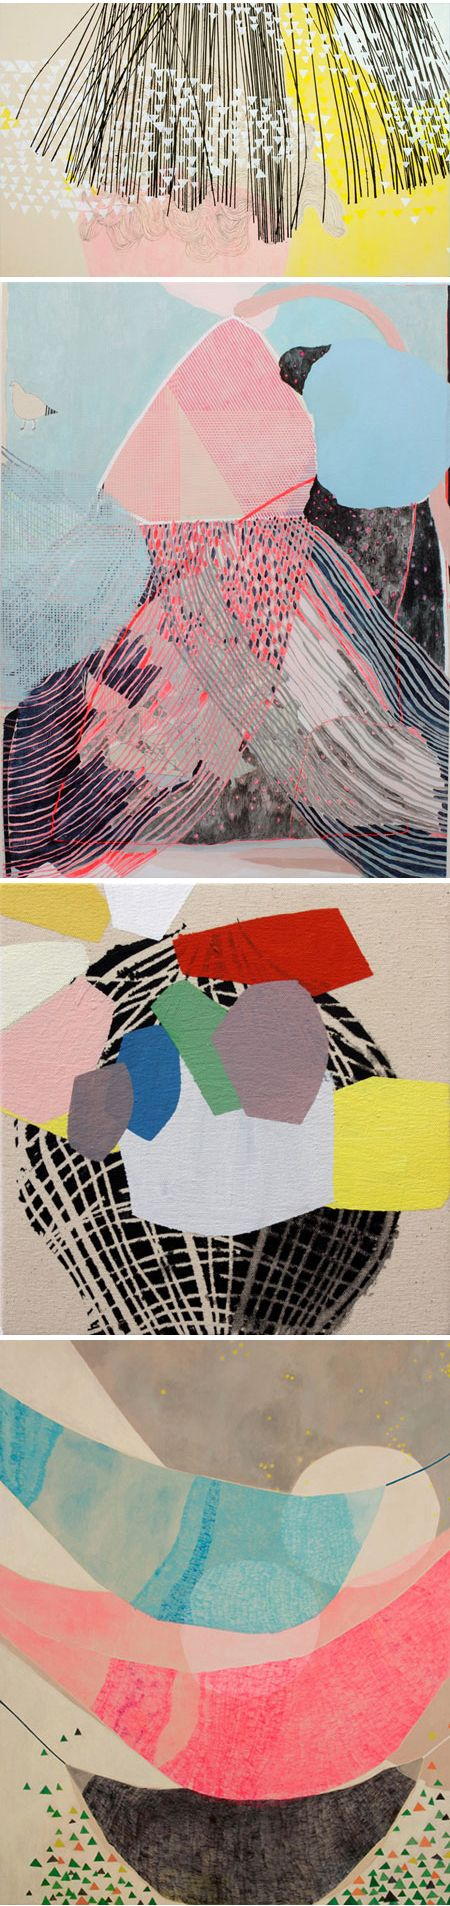 """""""Misato Suzuki lives in Los Angeles and her paintings feature glorious colors and elements of repetition, brought to life through"""